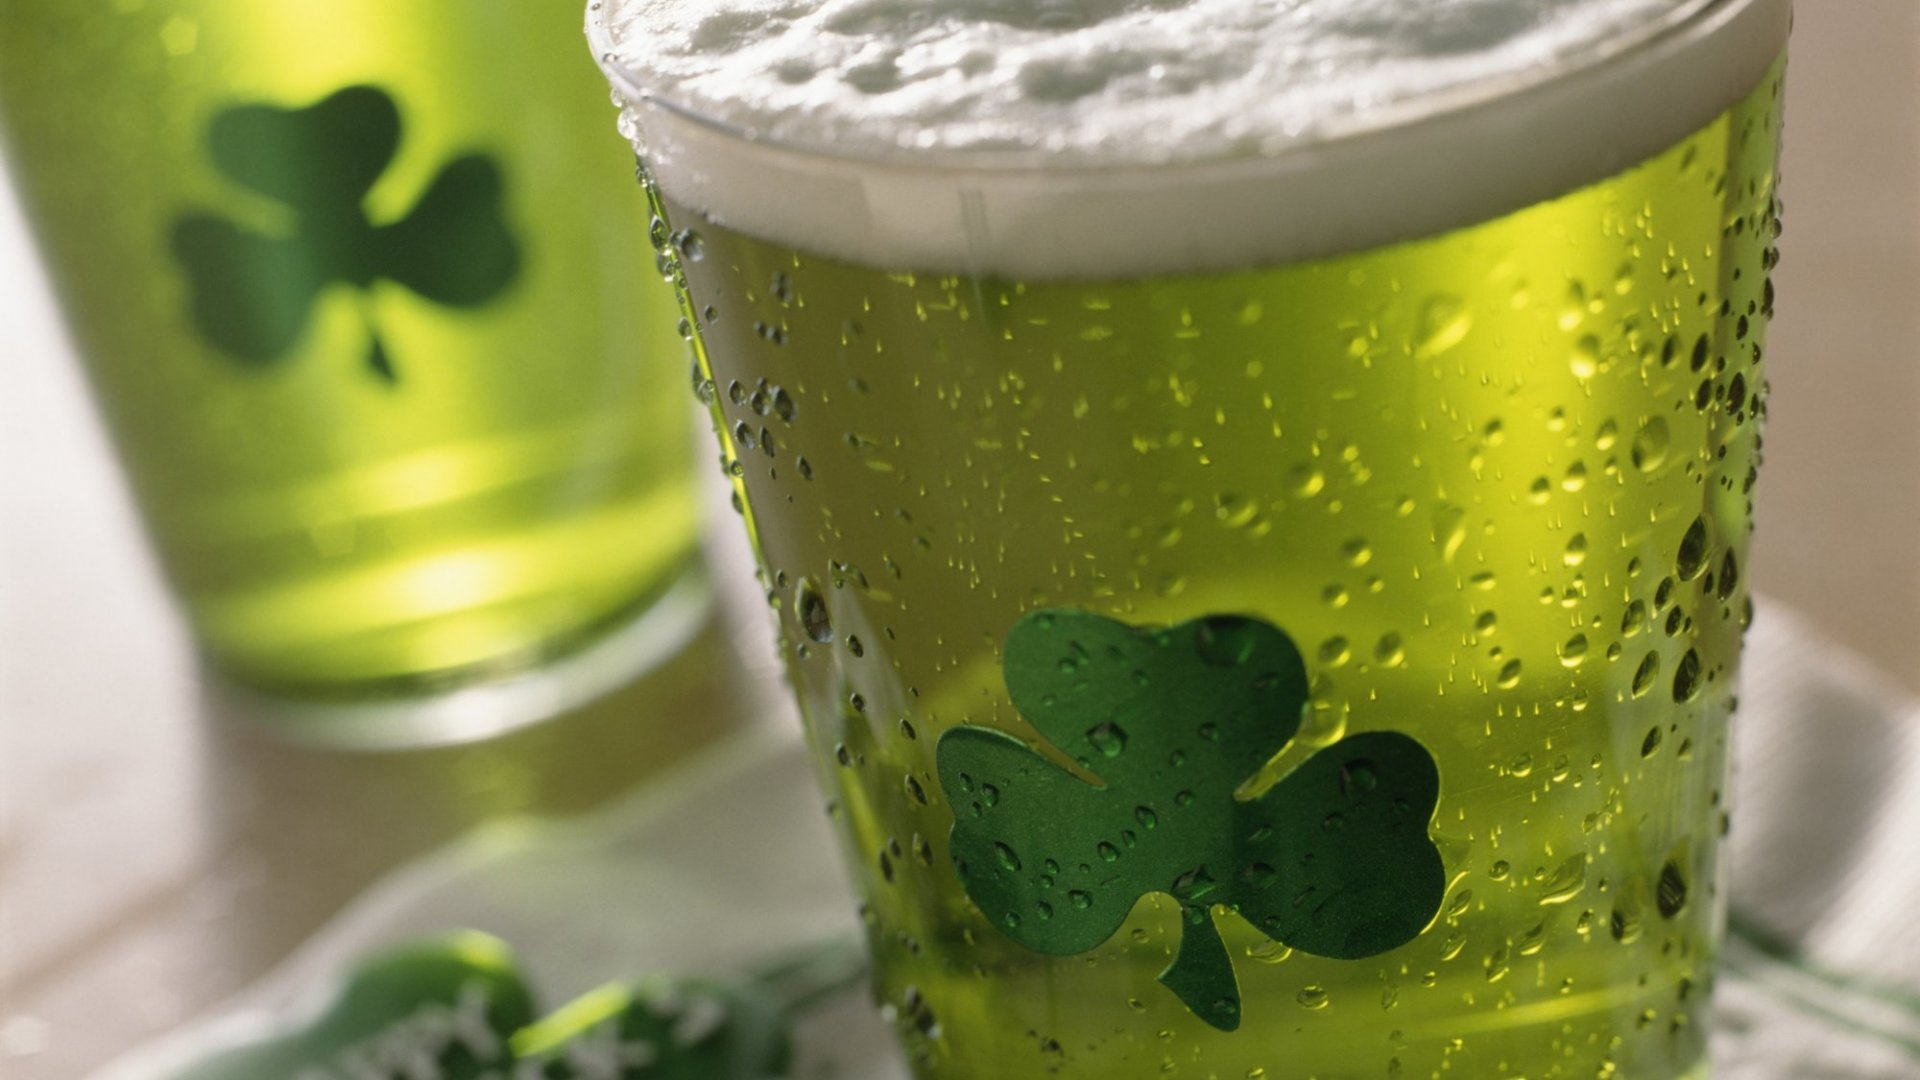 3 Ways to Have a Good, Clean Company Happy Hour (Green Beer Optional)